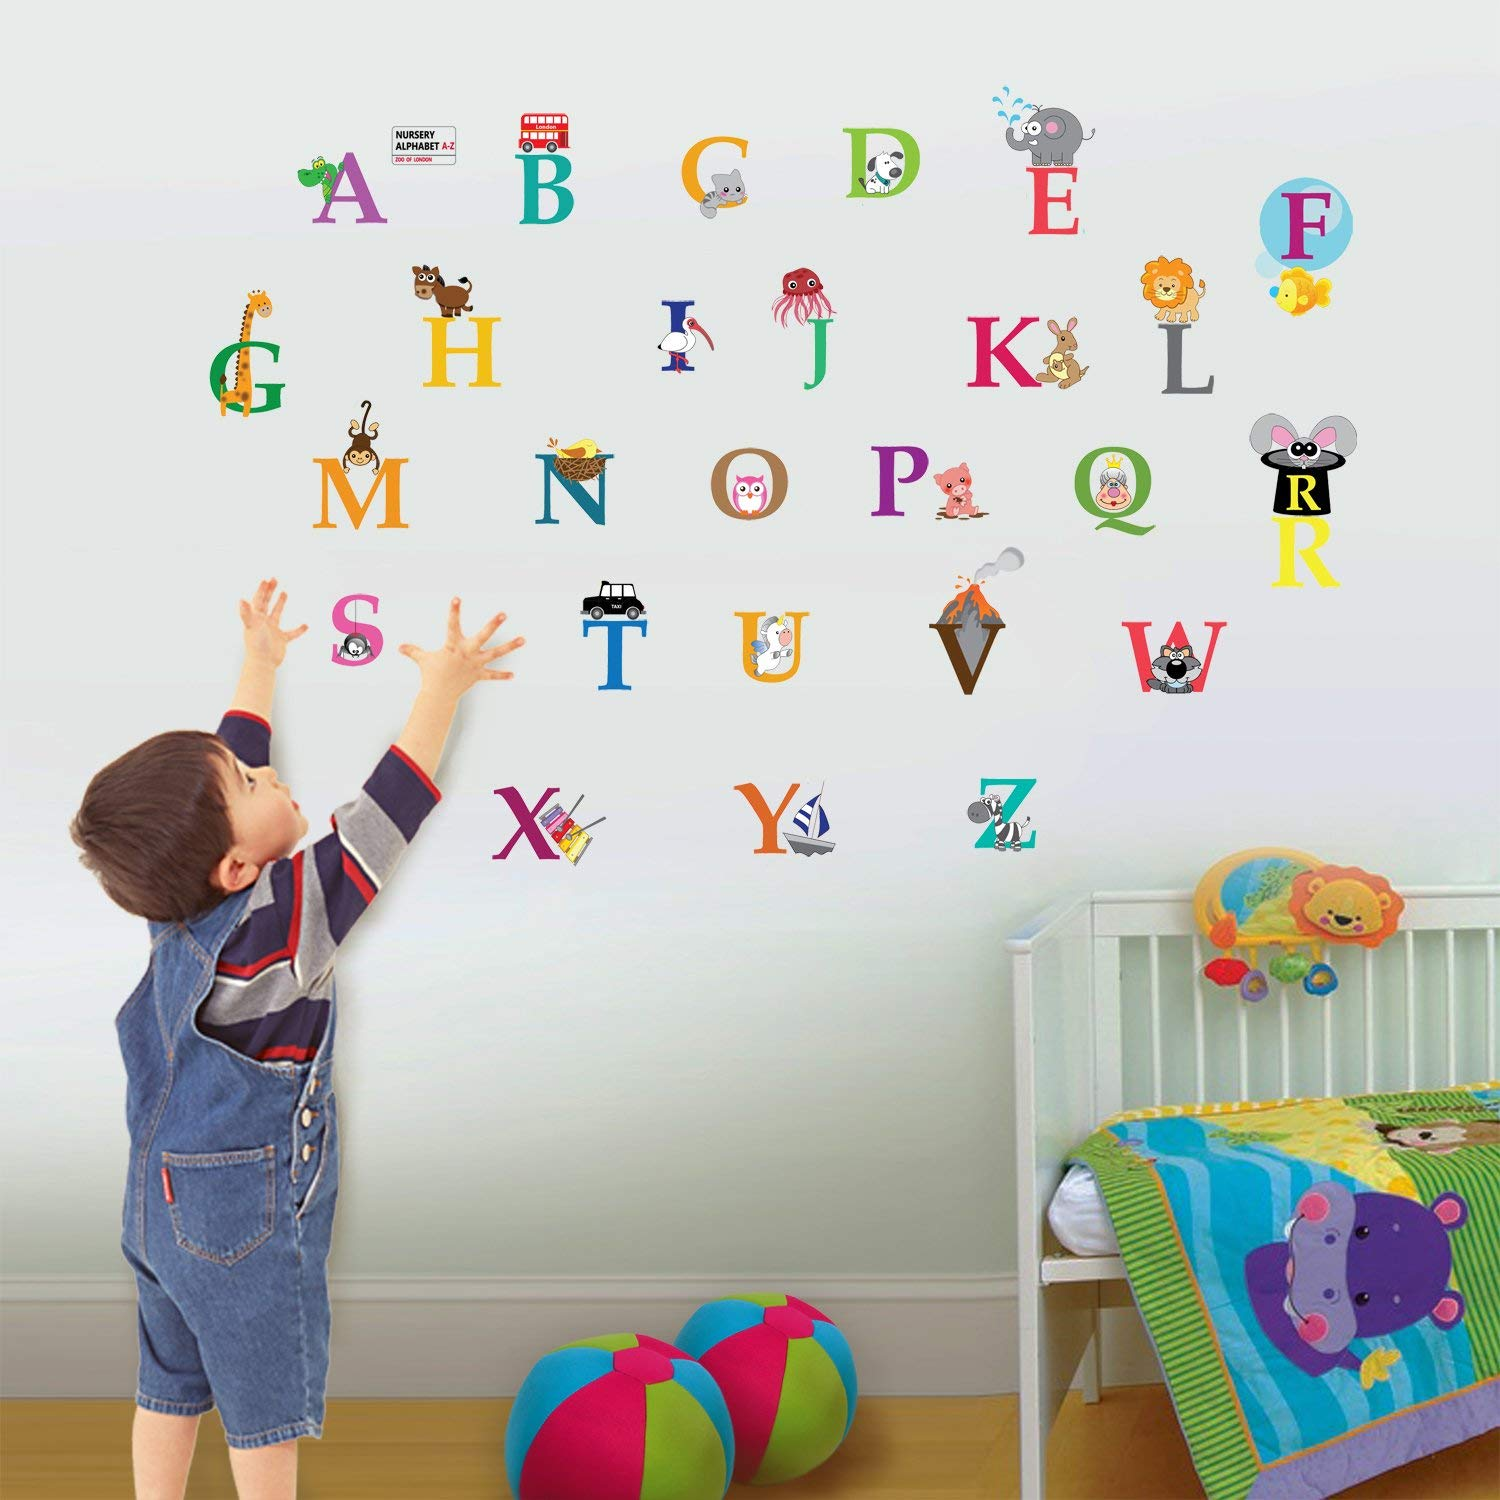 children wall stickers walplus 30x60 cm wall stickers cute alphabet london removable self-adhesive RTZJXSC